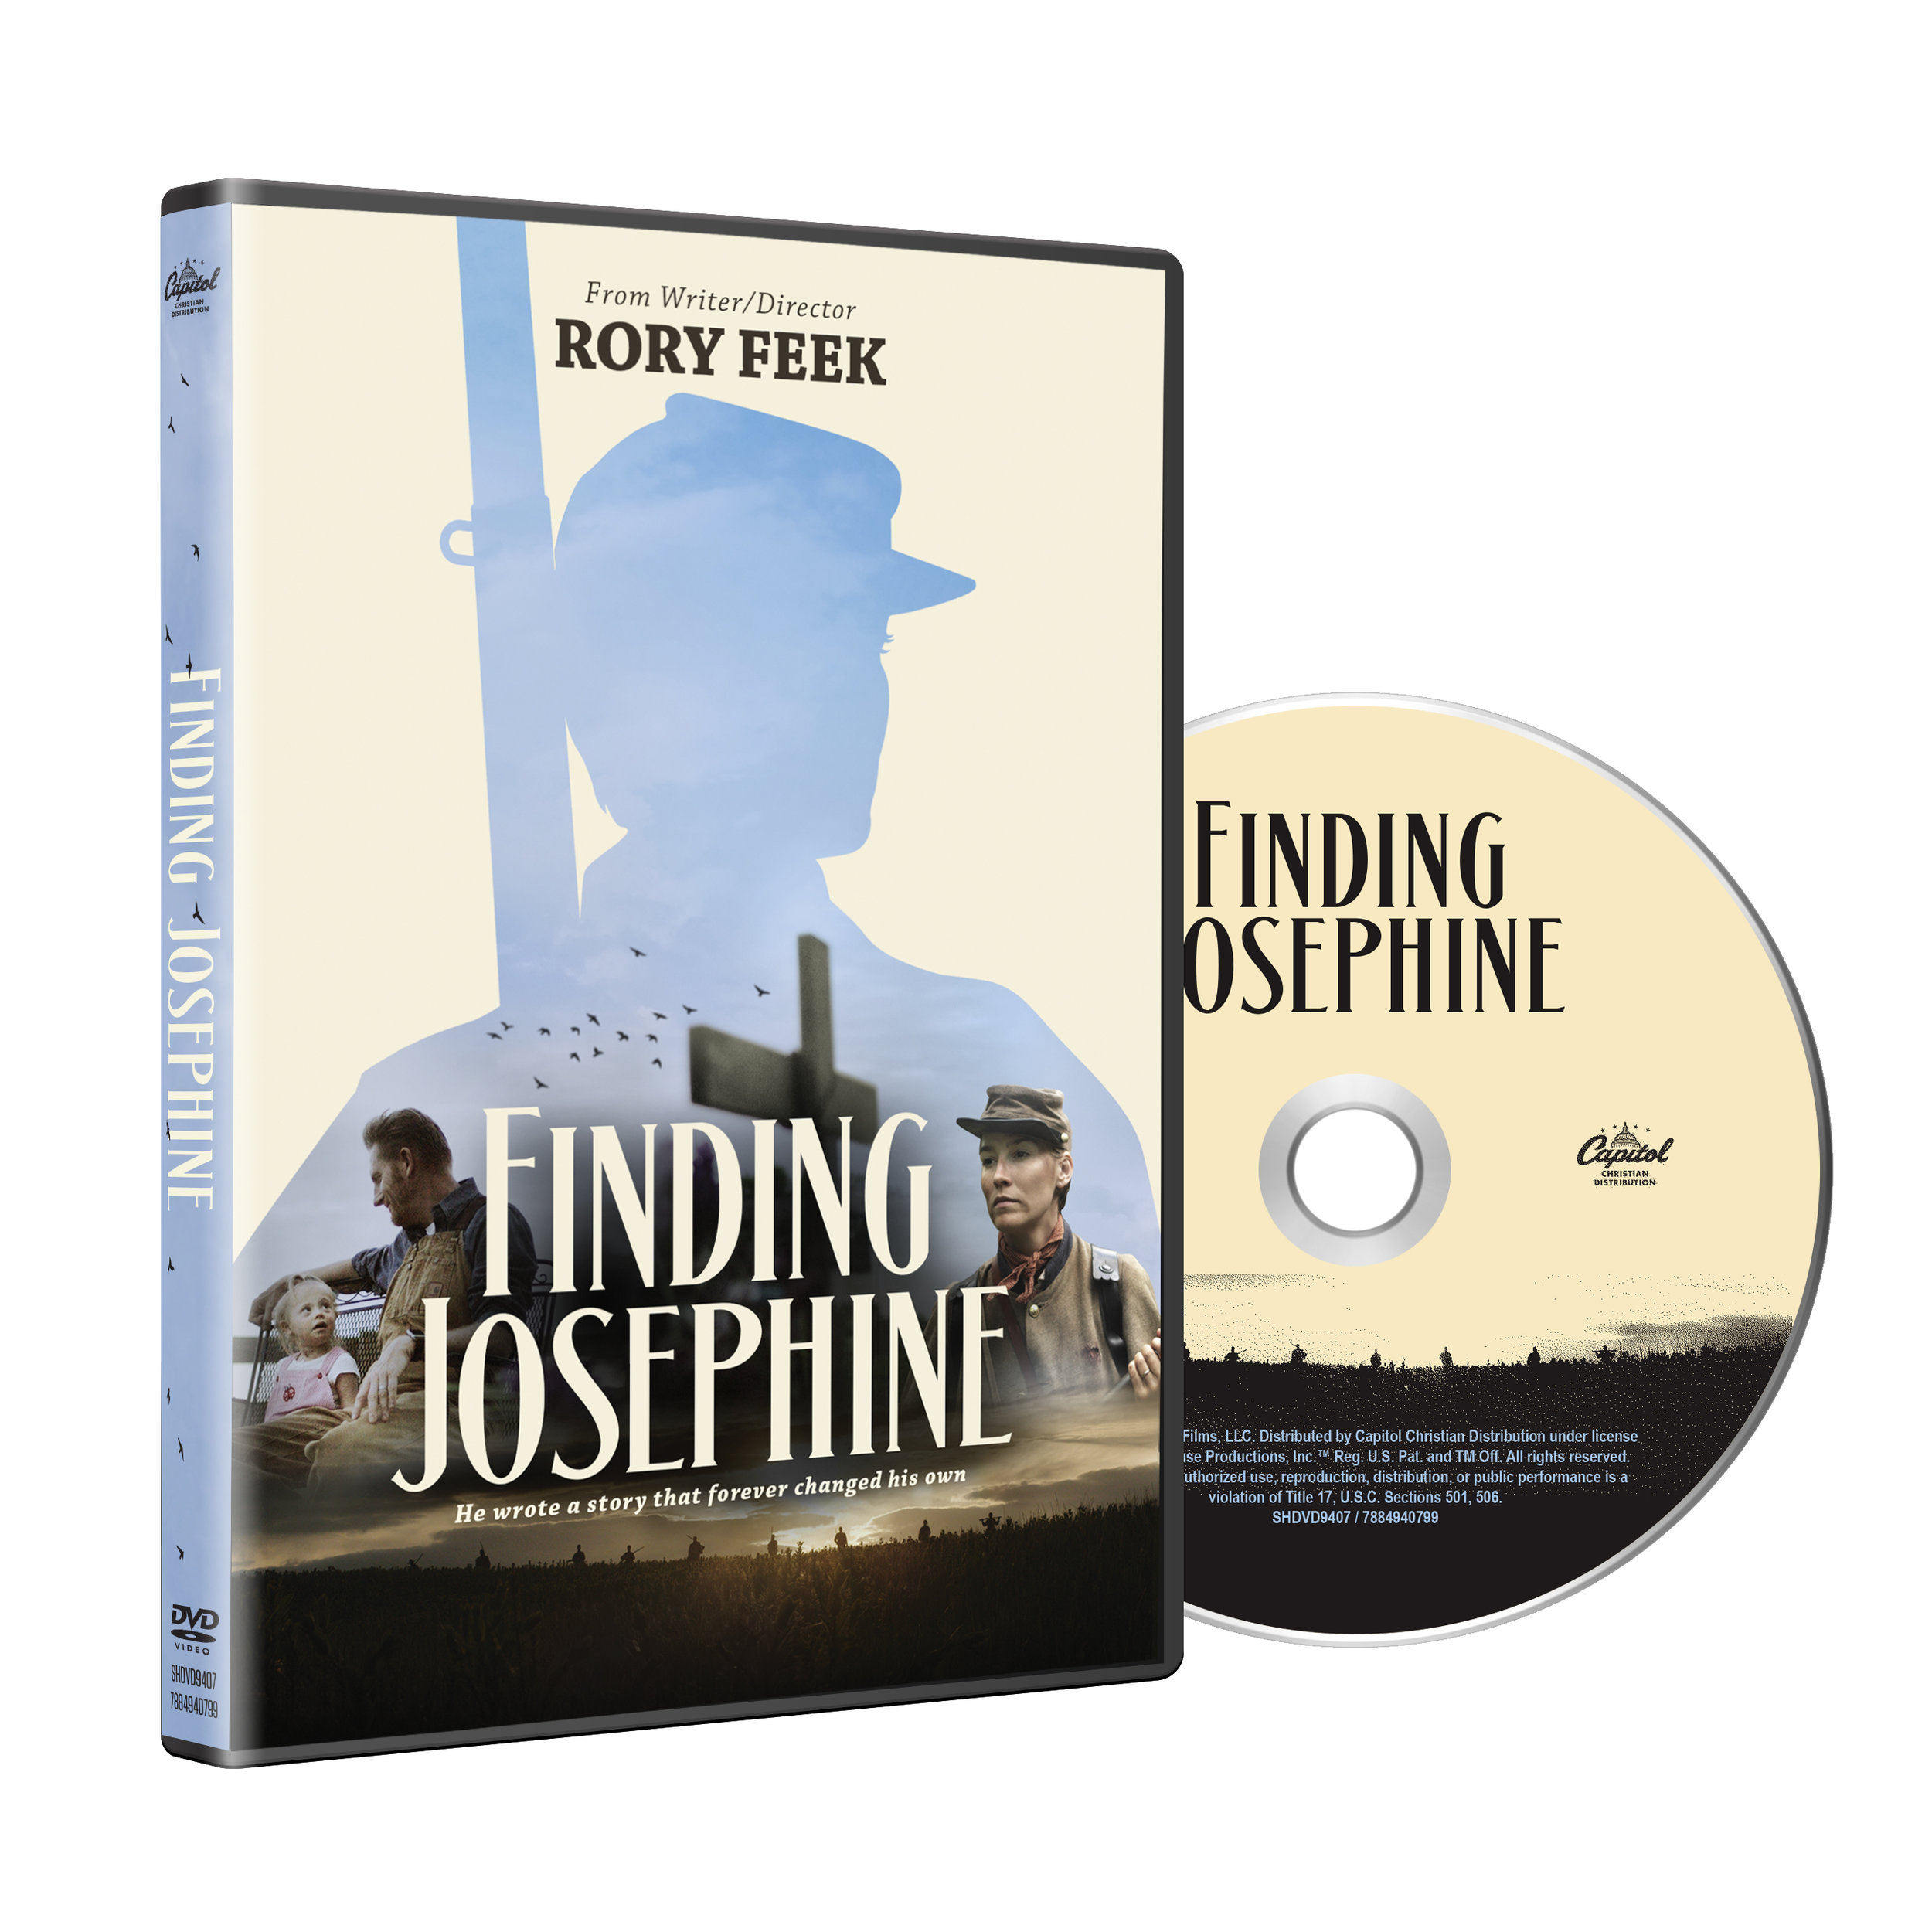 Finding Josephine - Inspired by letters he reads when he buys a 150-year old farmhouse, Writer/Director Rory Feek pens a story about the wife of a civil war soldier who enlists in the army and fights her way across the country to find her missing husband.As Rory is taken on Josephine's incredible journey, he personally dreams of having a love like hers. In the end, he gets that and so much more.